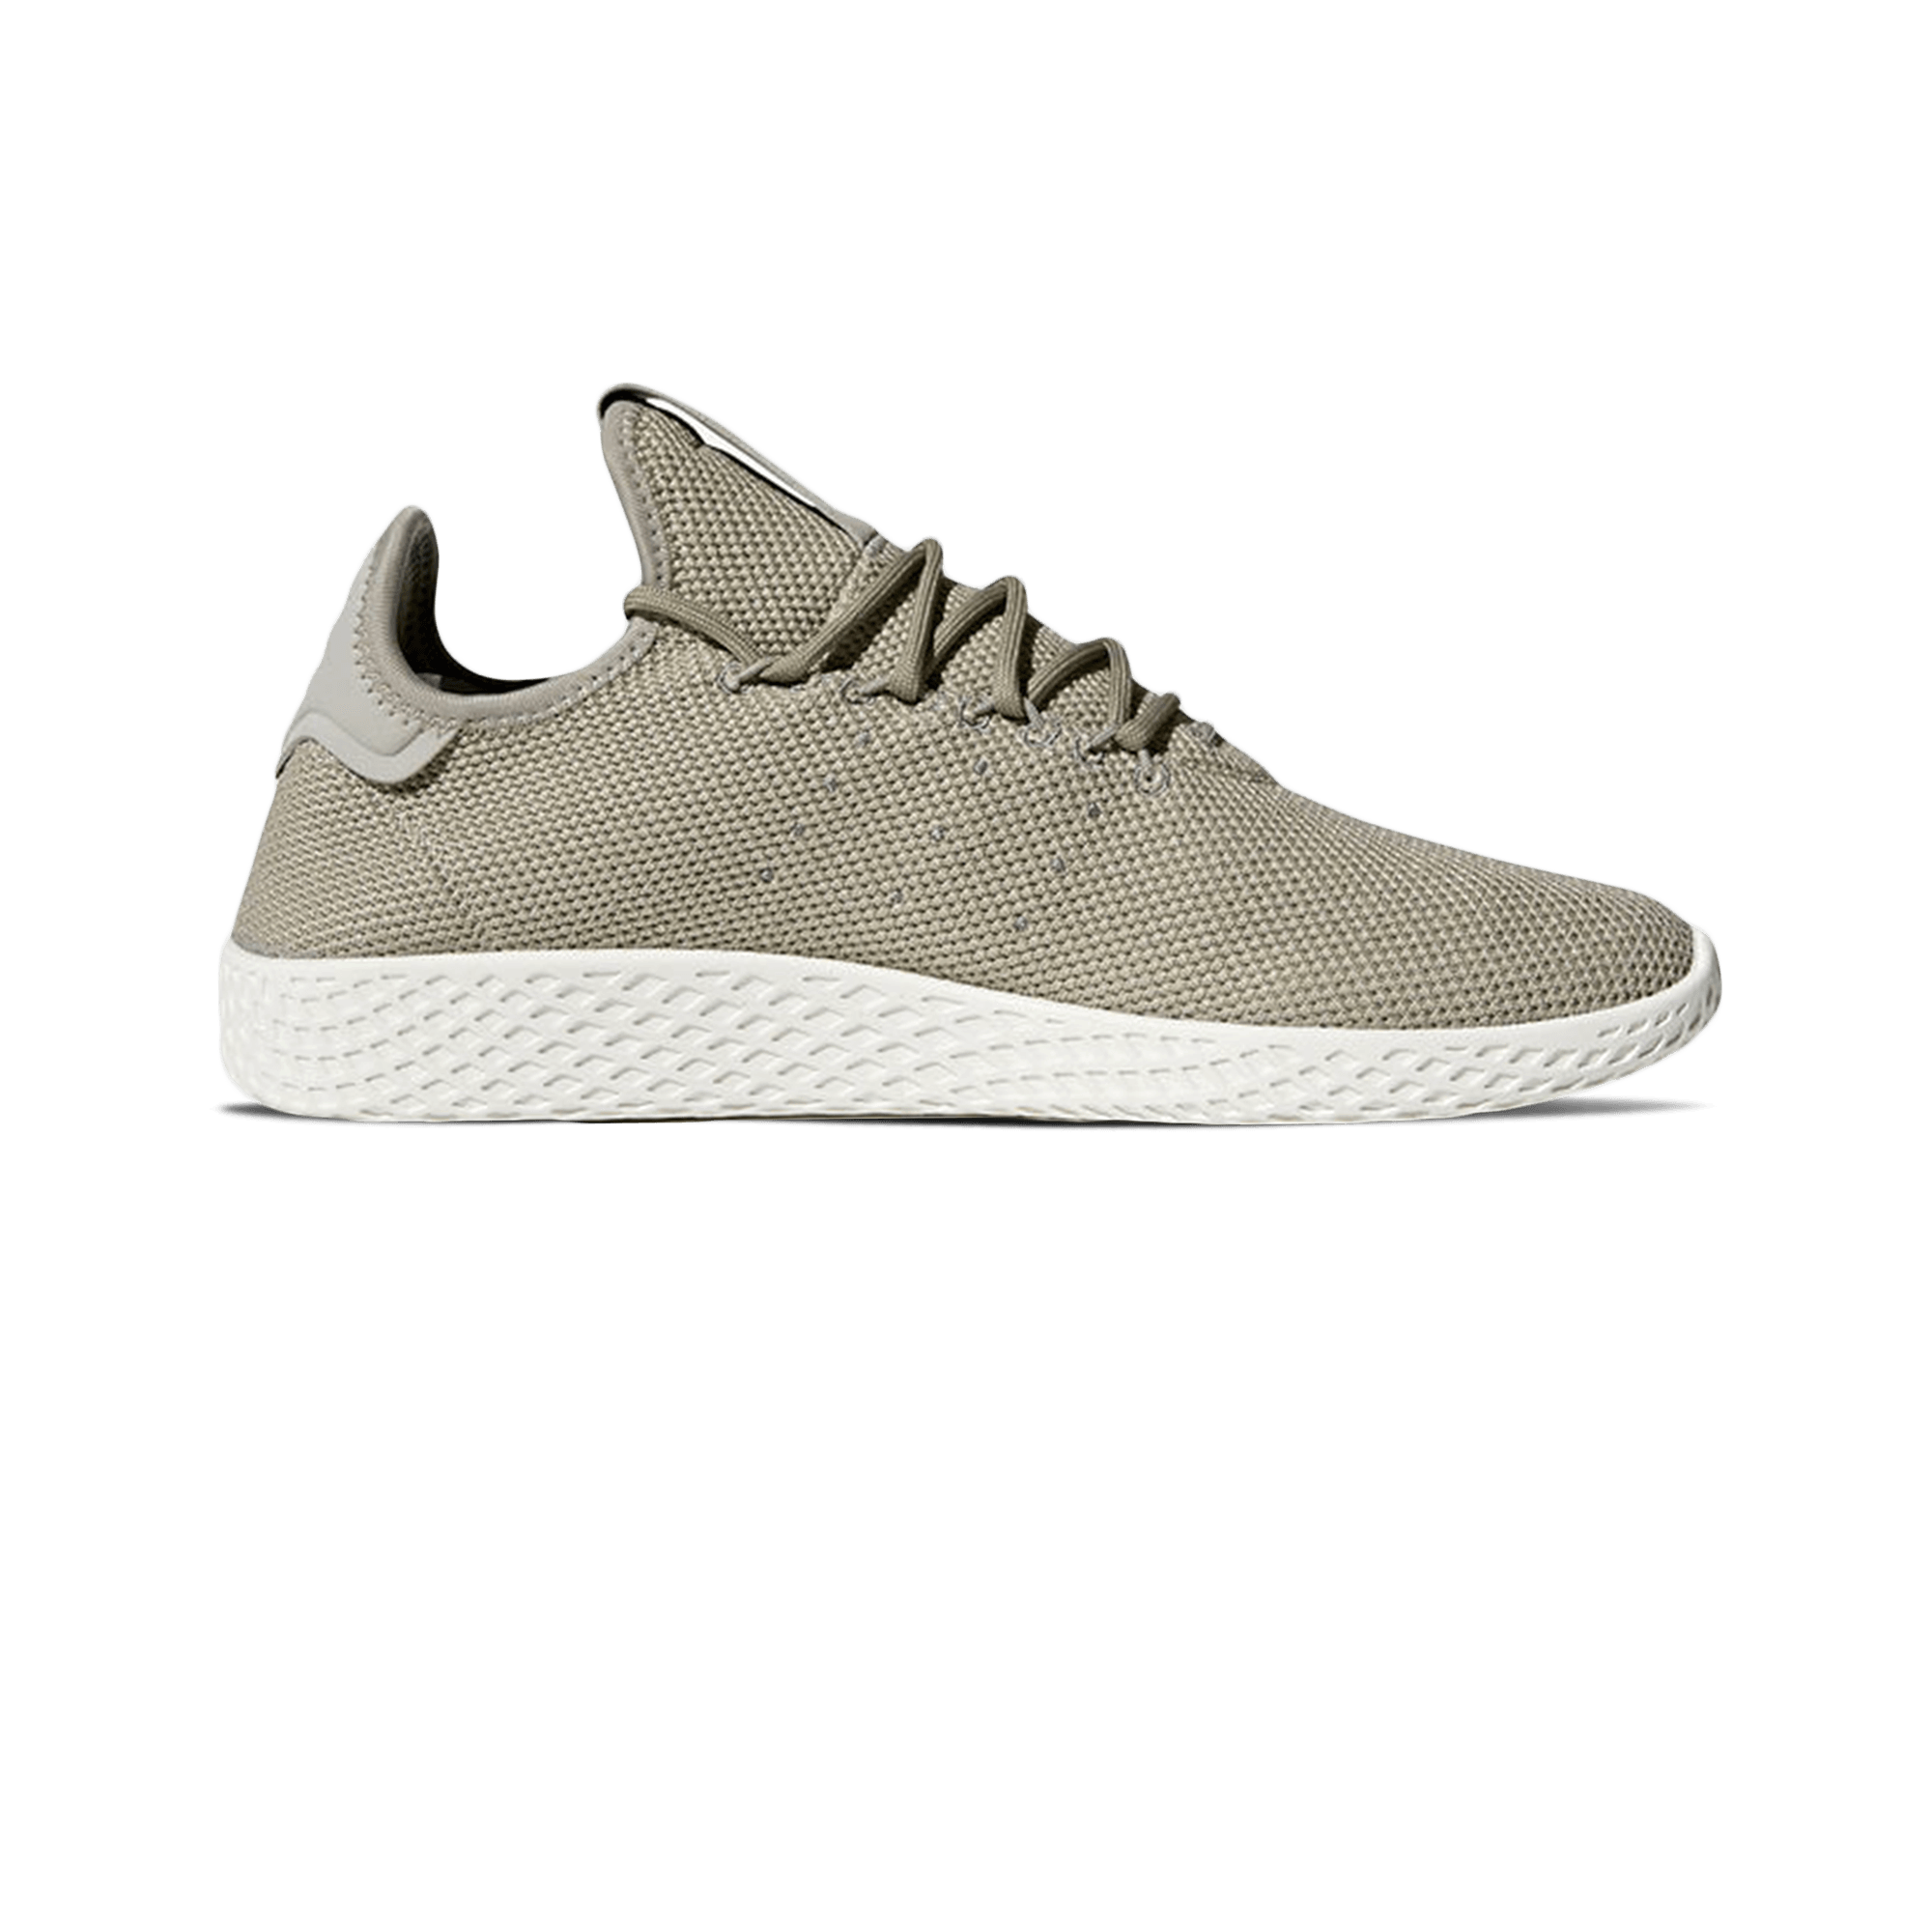 PW Tennis HU olive/white